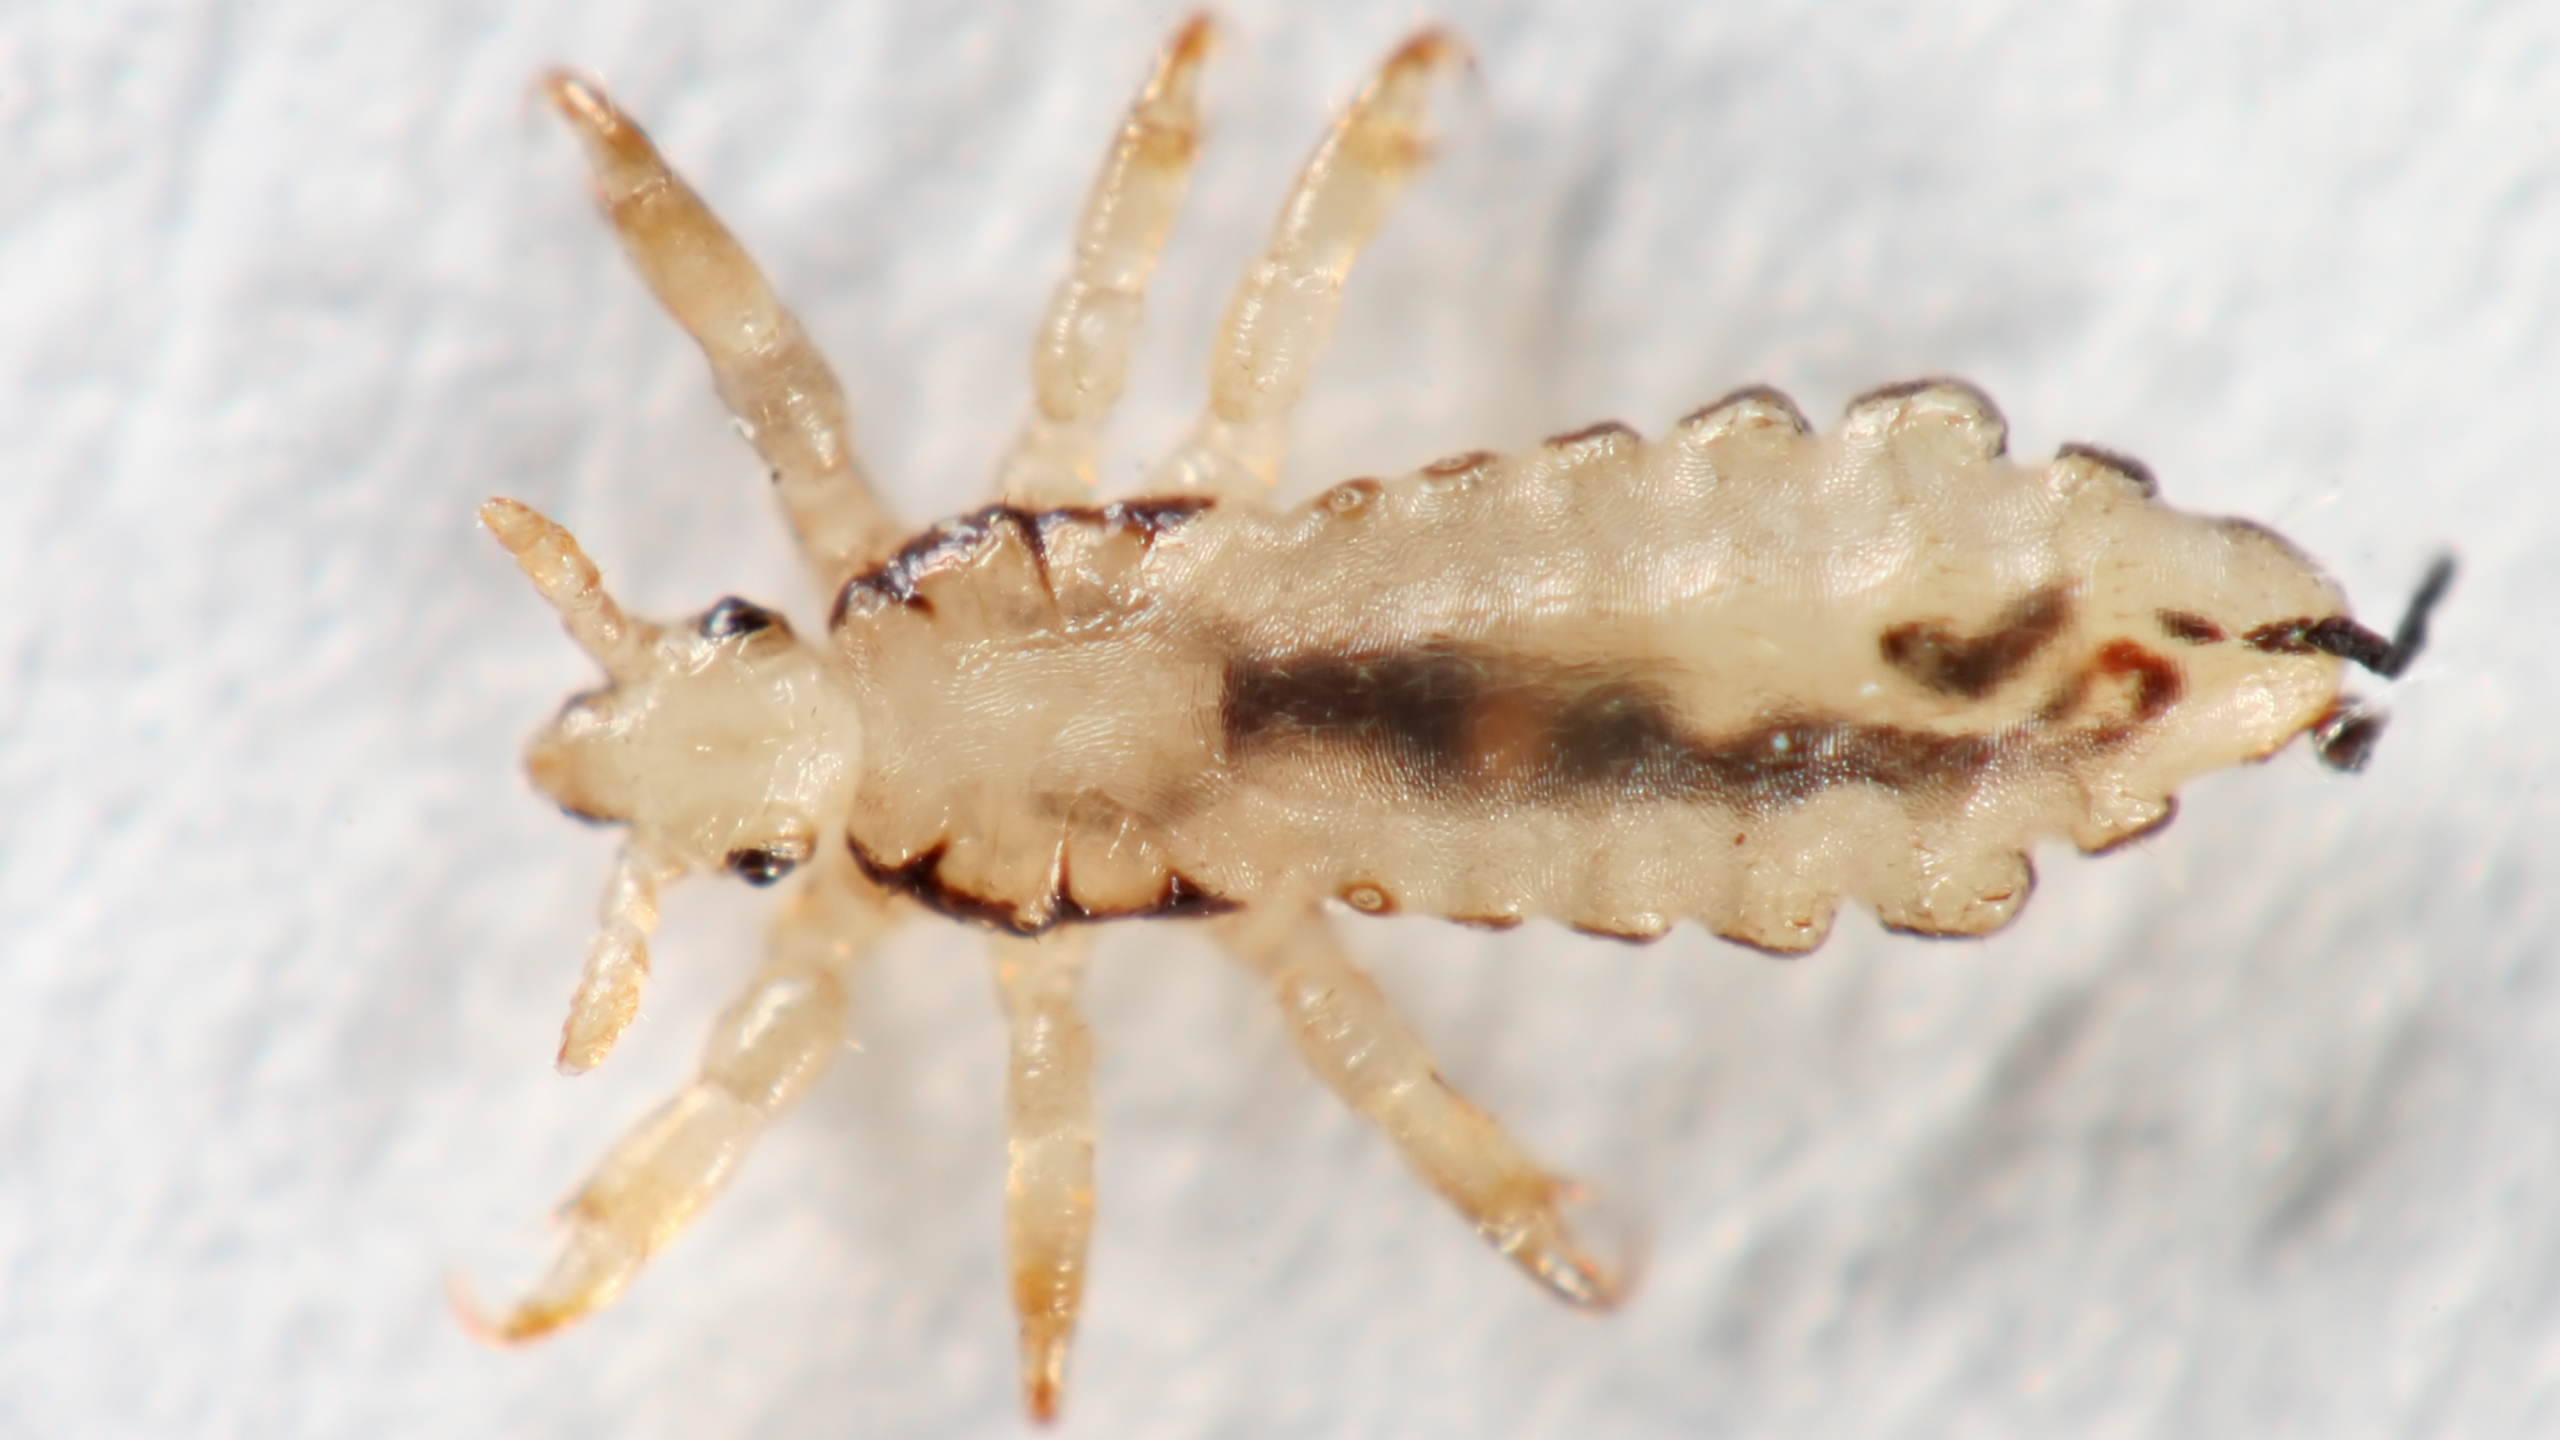 File photo of head louse. (iStock/Getty Images Plus)